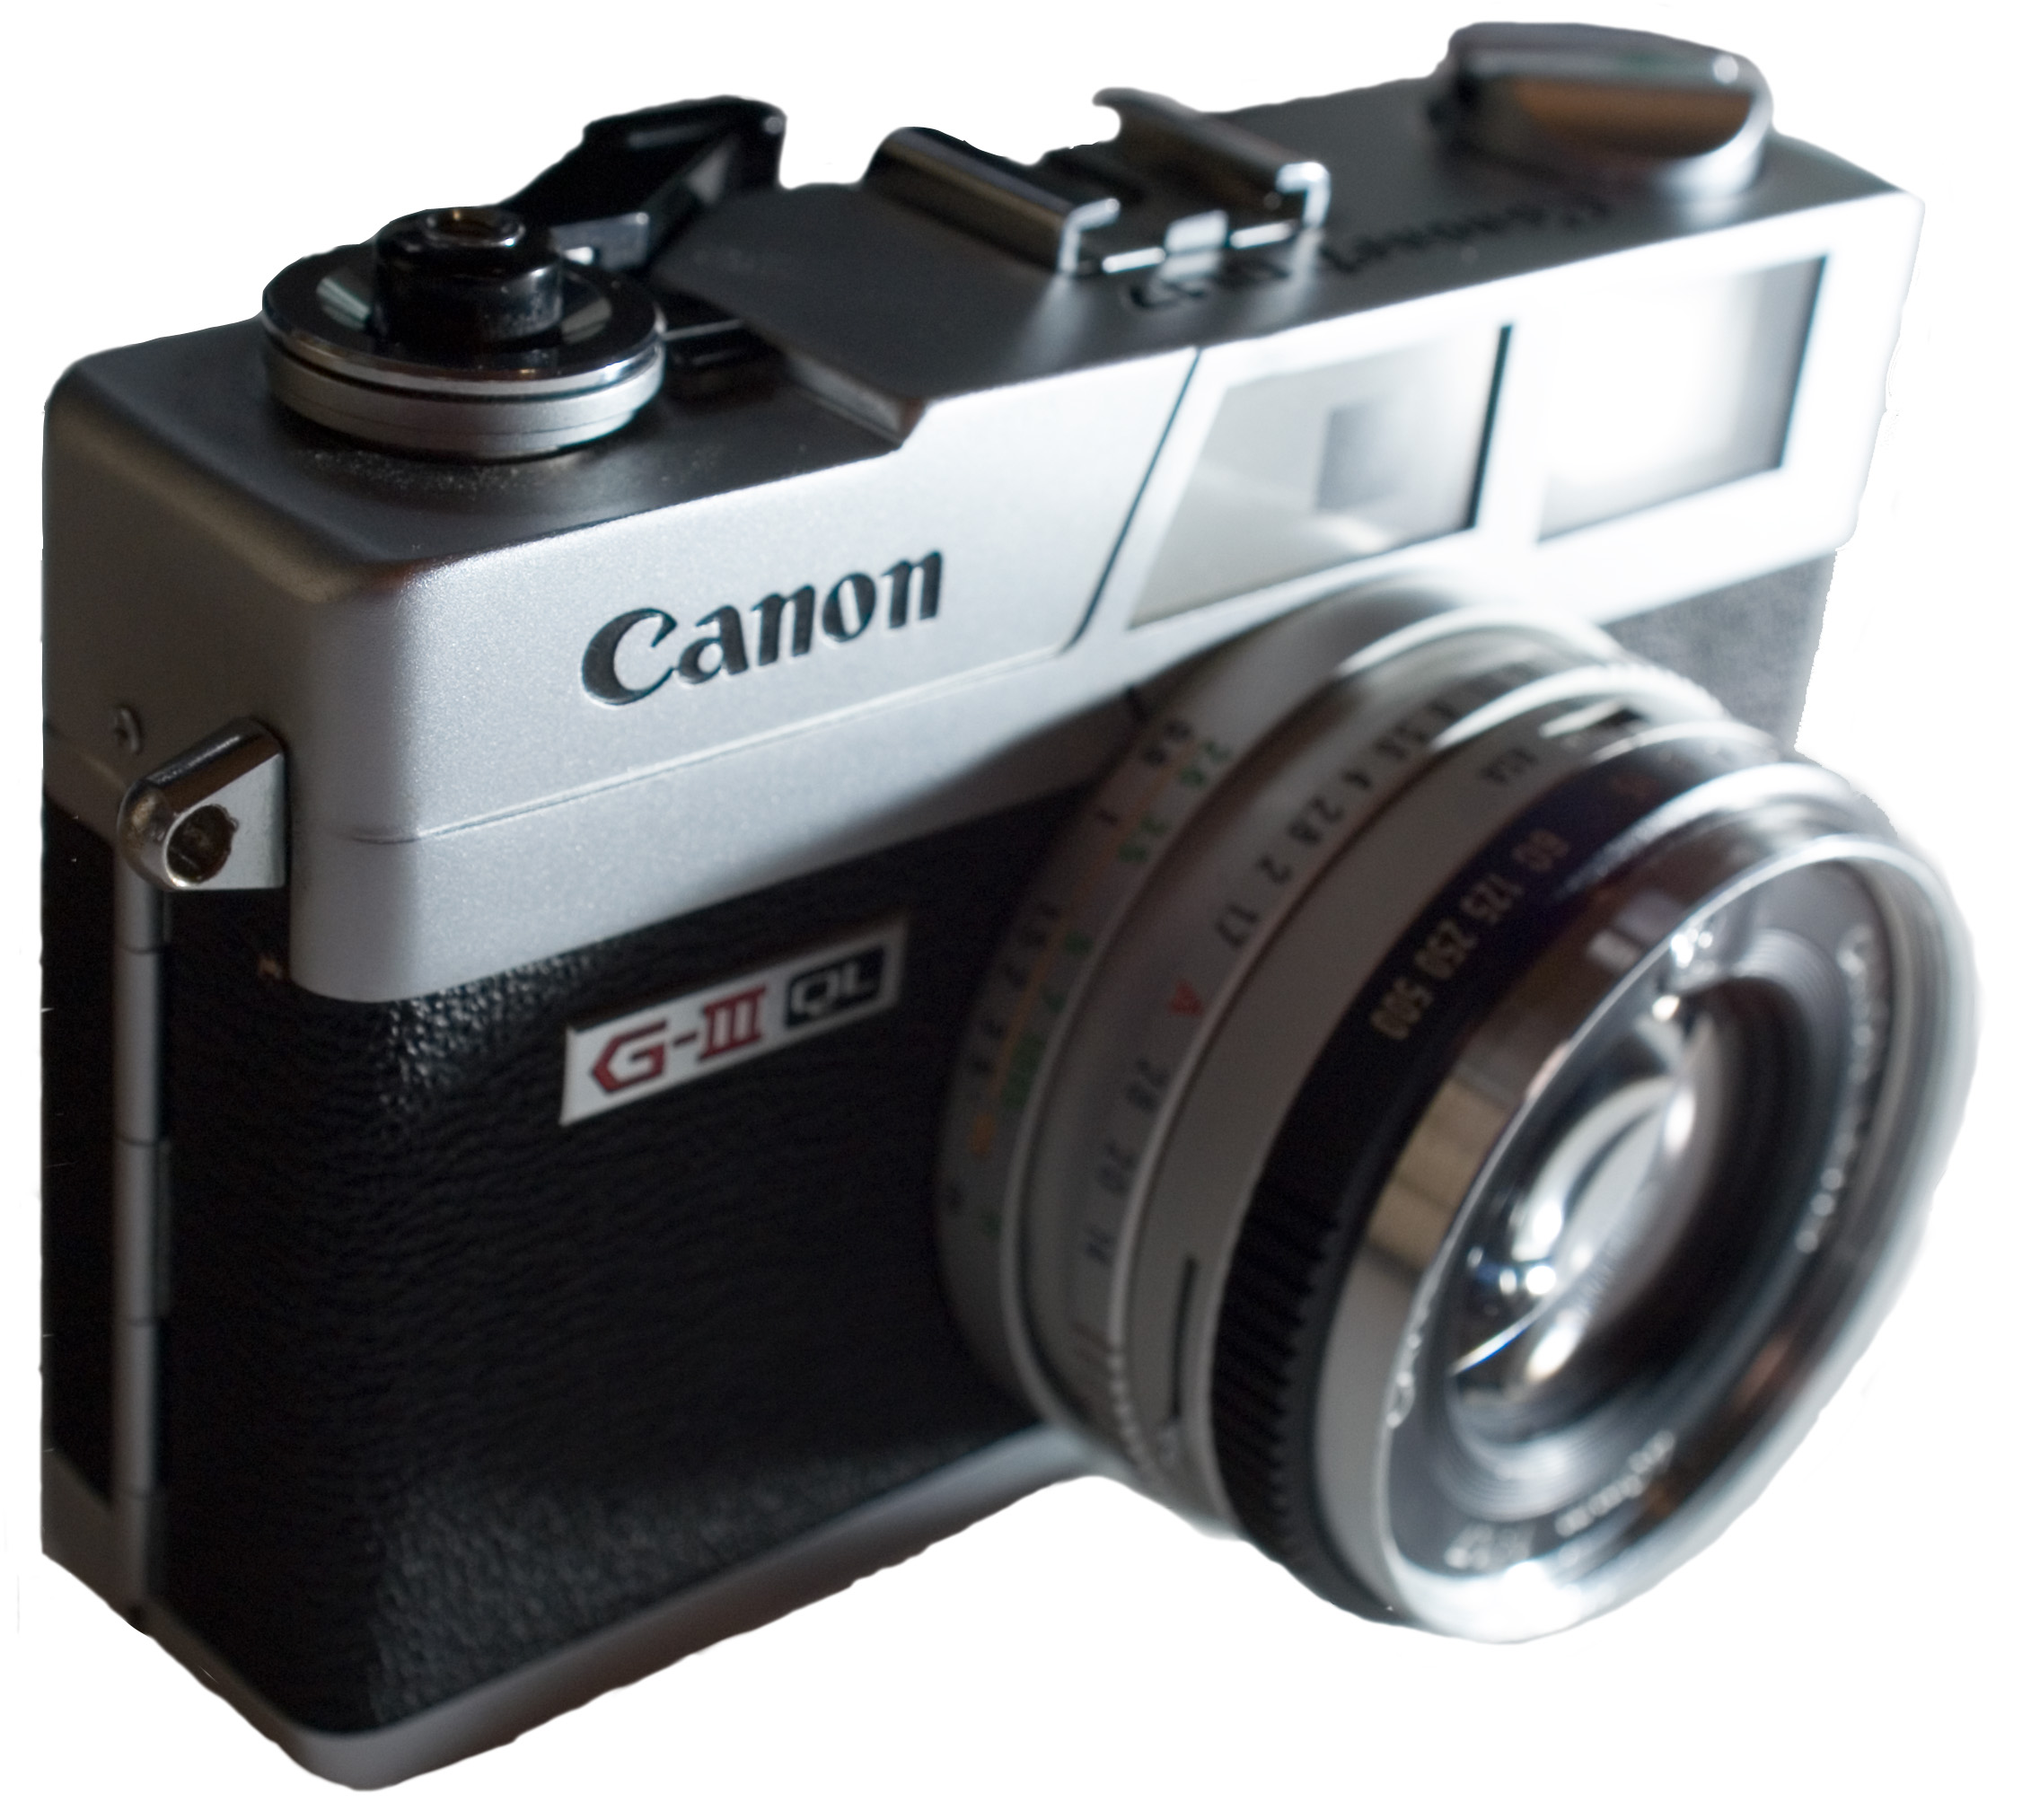 5 Top Film Cameras On A Tight Budget Throw Your Ball Camera To Take Panoramic Photos Canonet Ql17 Giii Image Courtesy Wikipedia